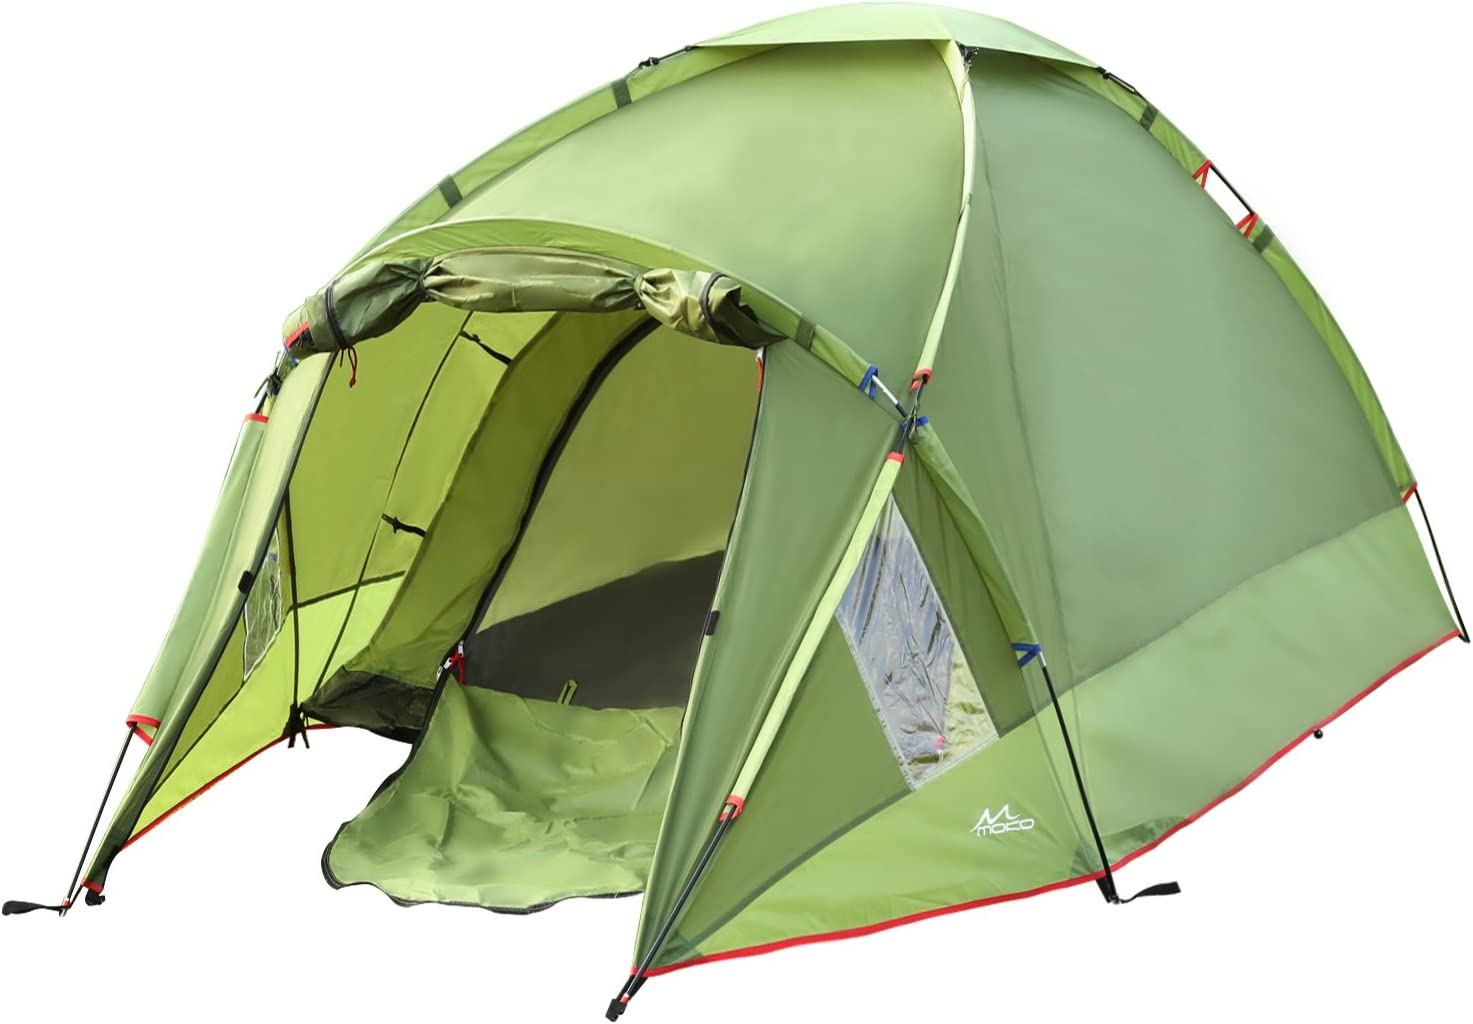 Moko Instant Cold Weather Tent